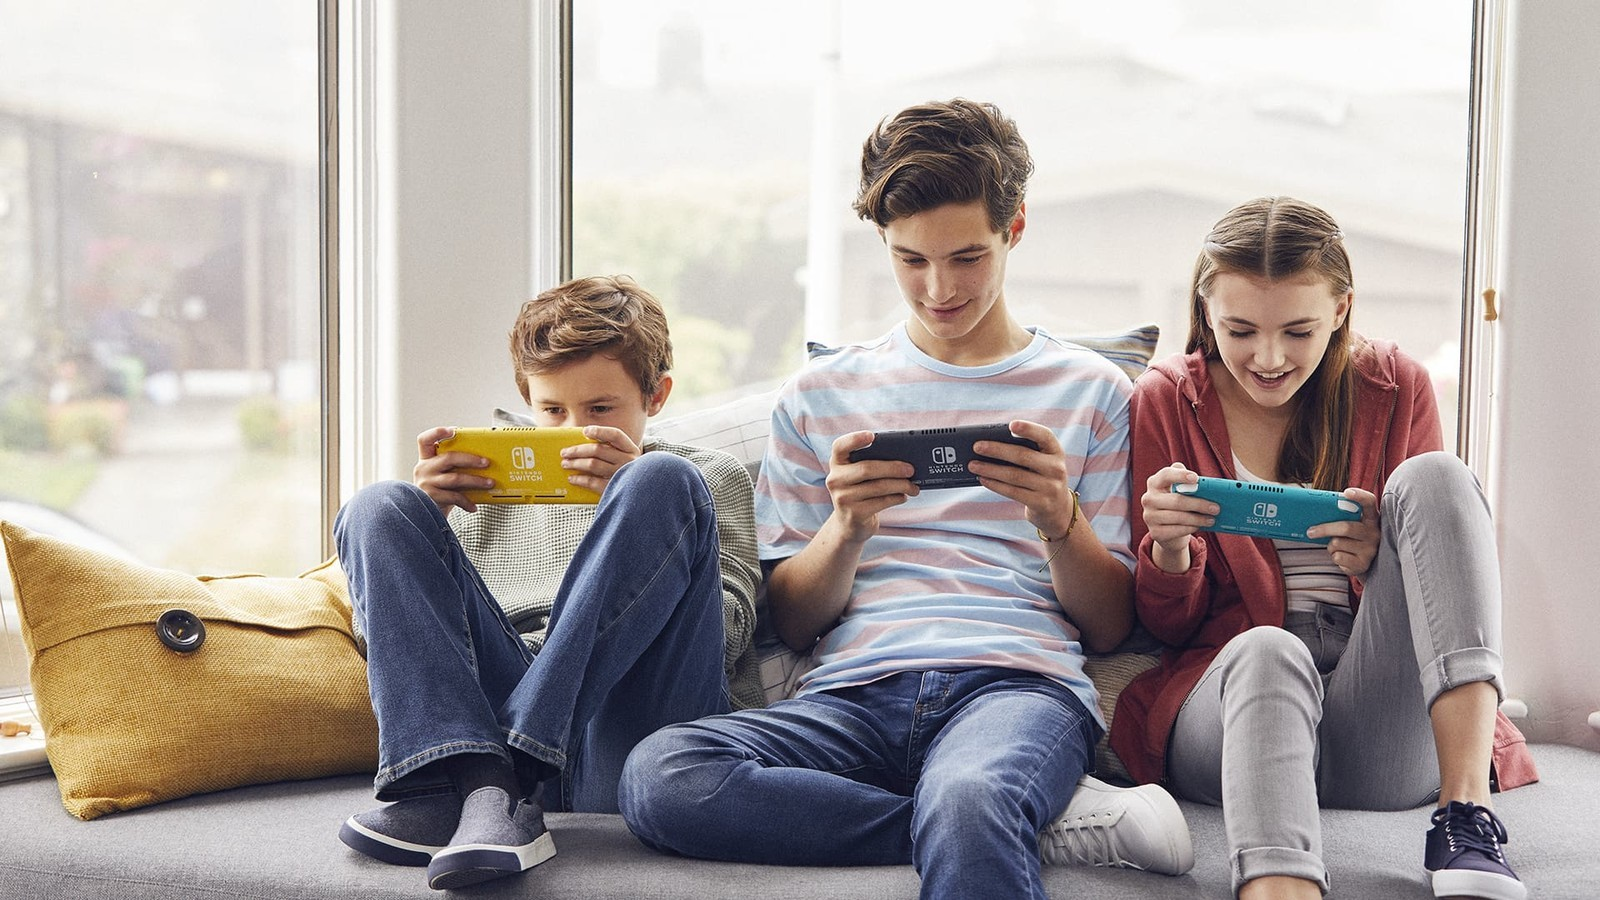 Can Nintendo Switch Lite play local co-op with standard